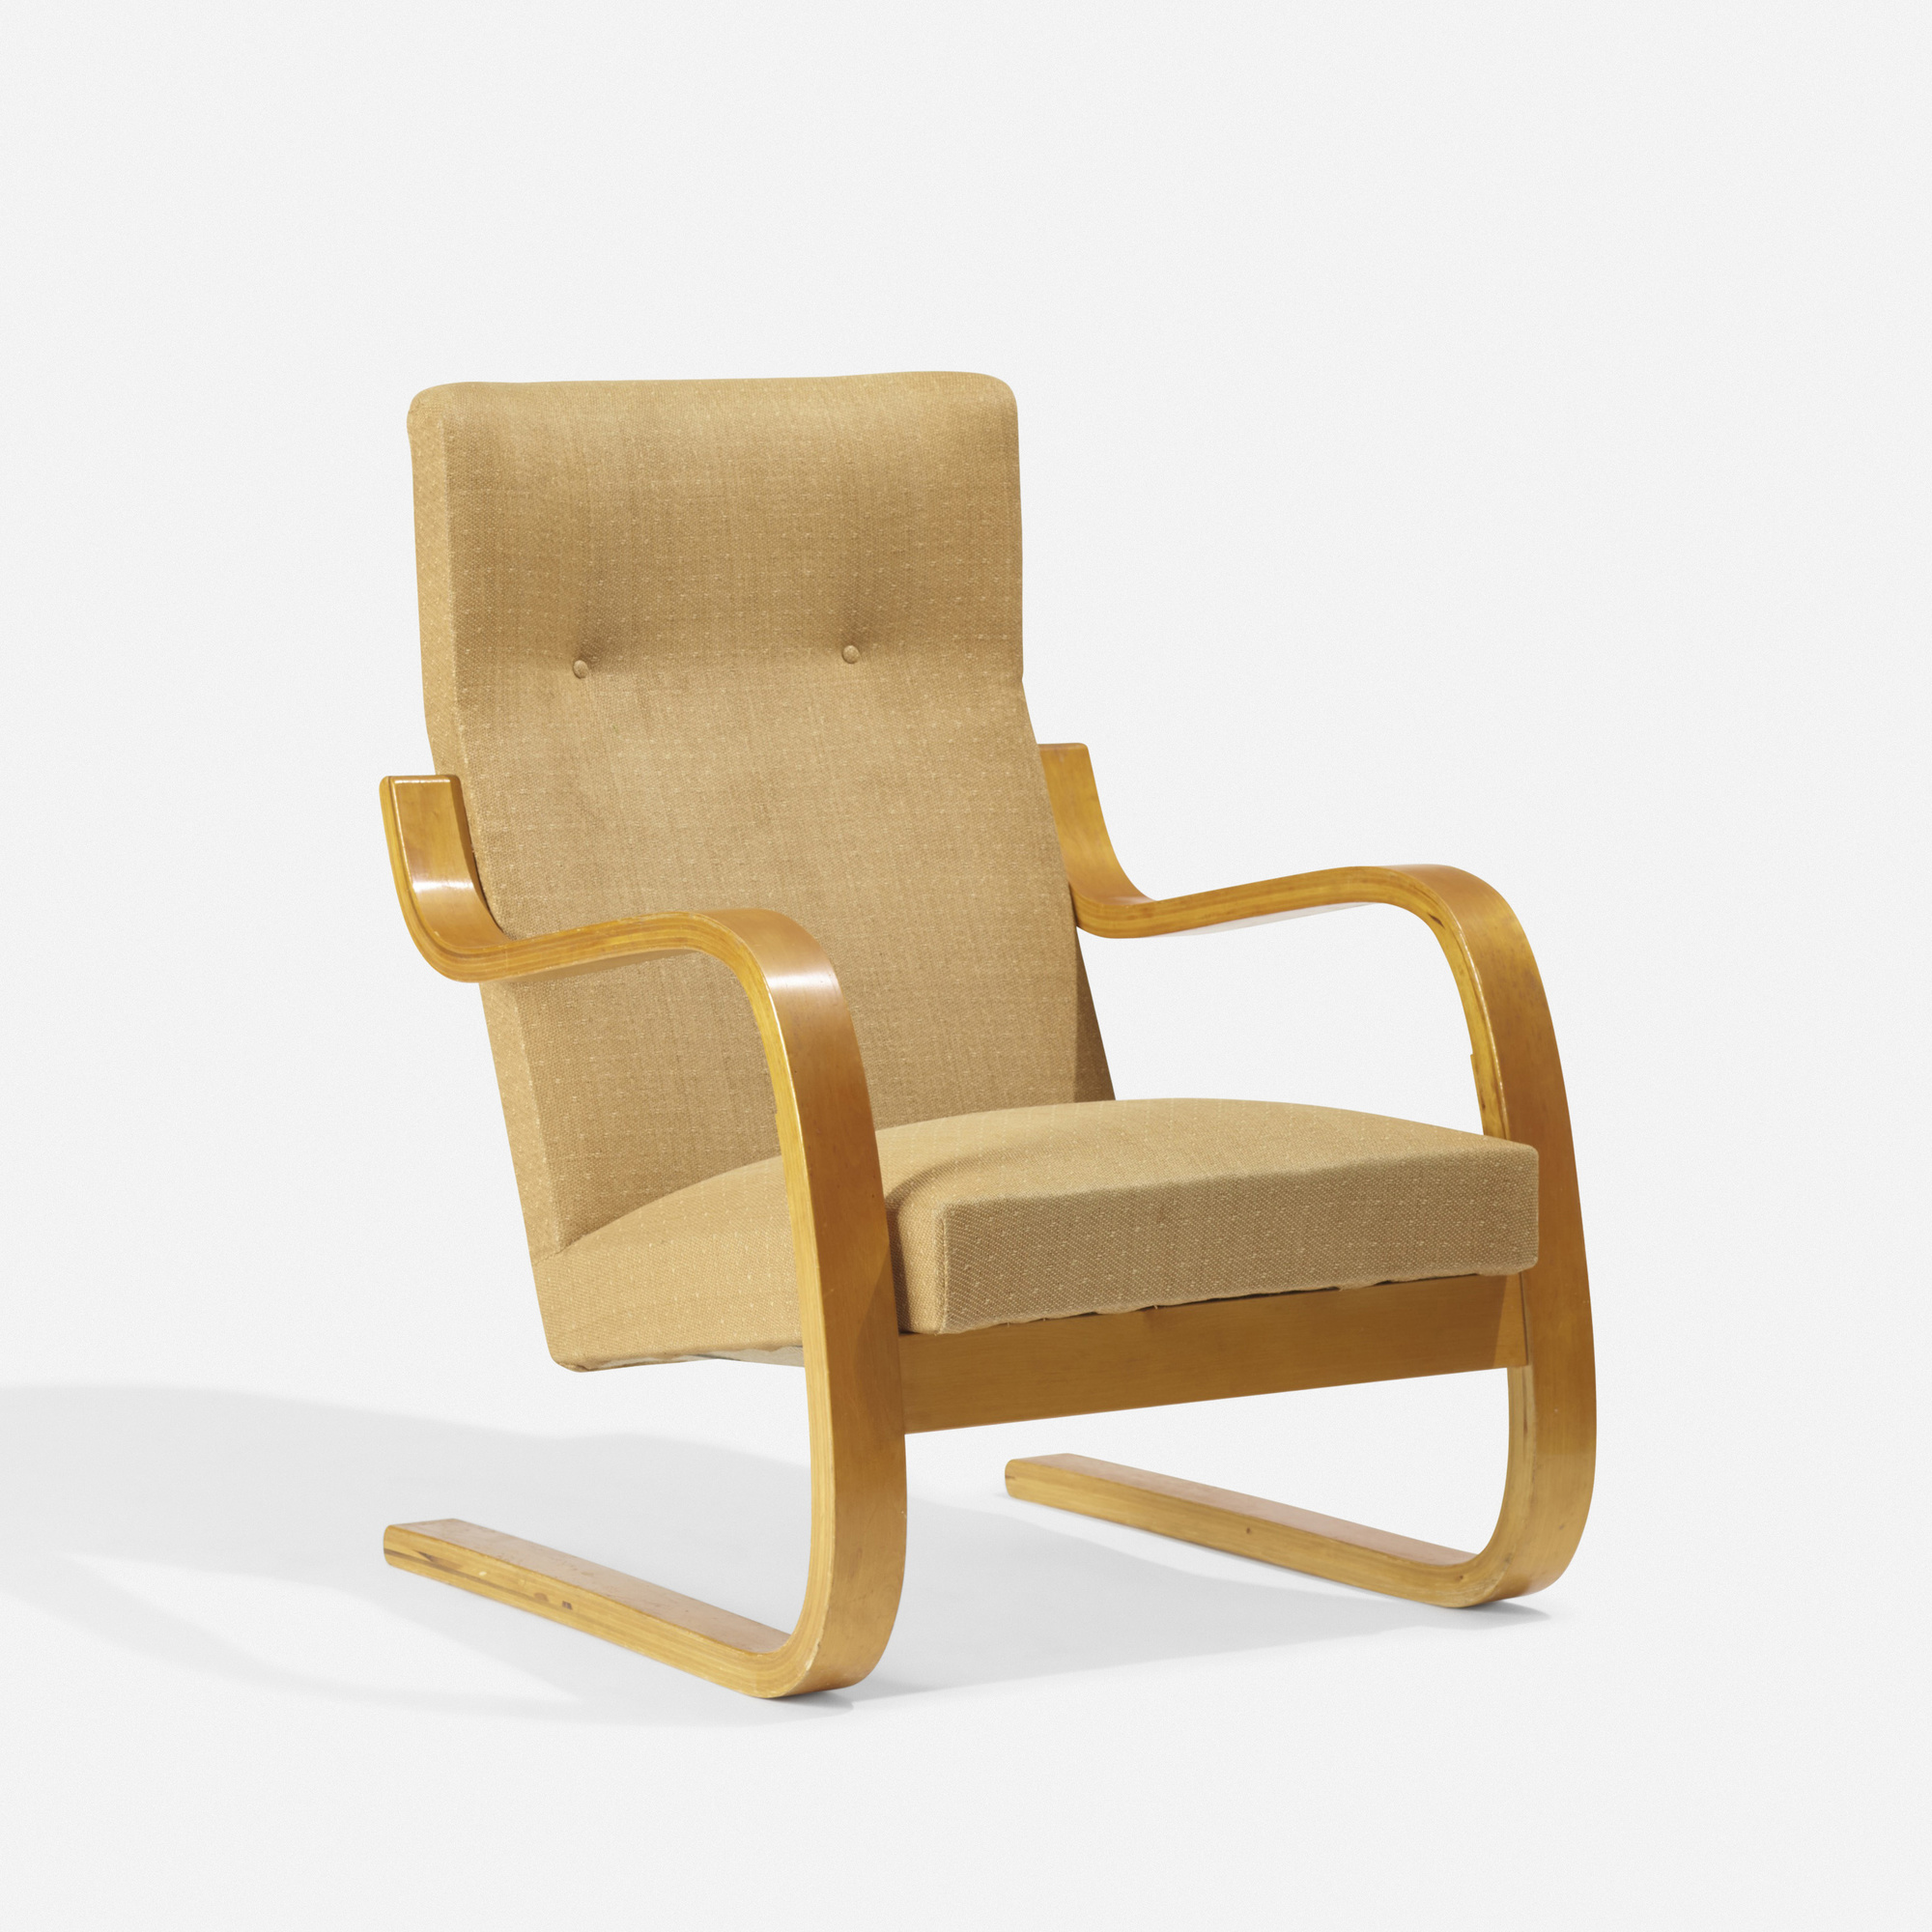 203: Alvar Aalto / Early Cantilevered Armchair, Model 36/401 (1 Of